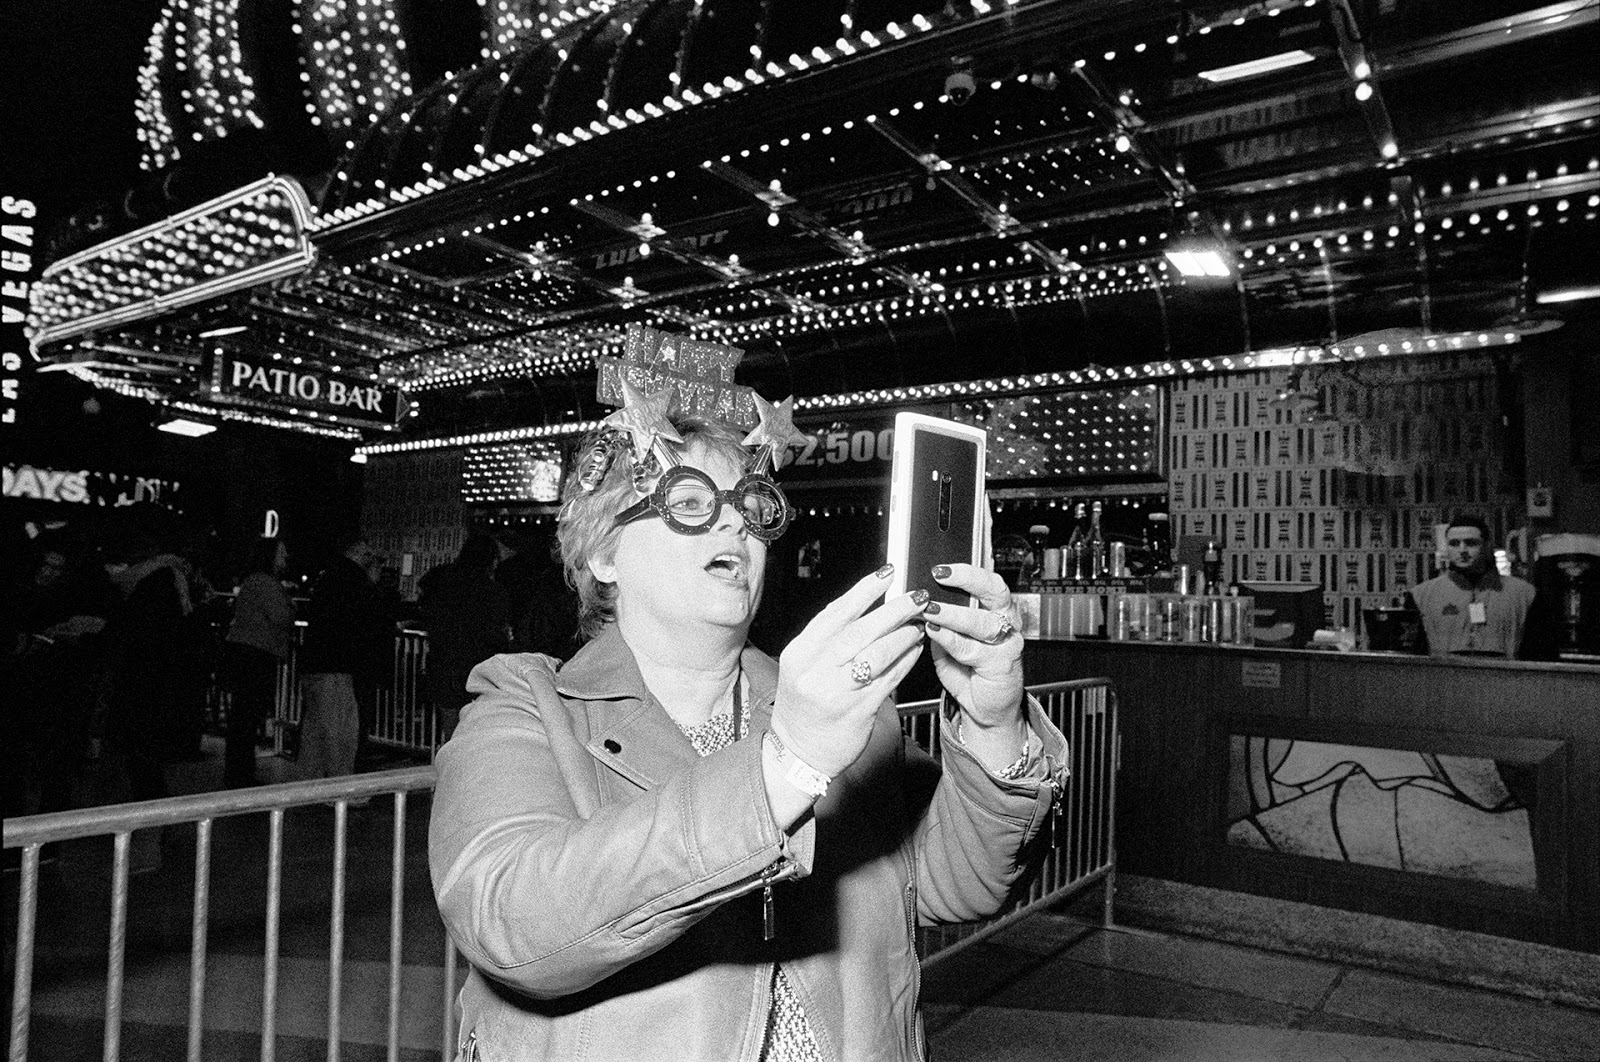 jill waterman, photographer and writer for b&H photo, takes a selfie during New Year's on the vegas strip.